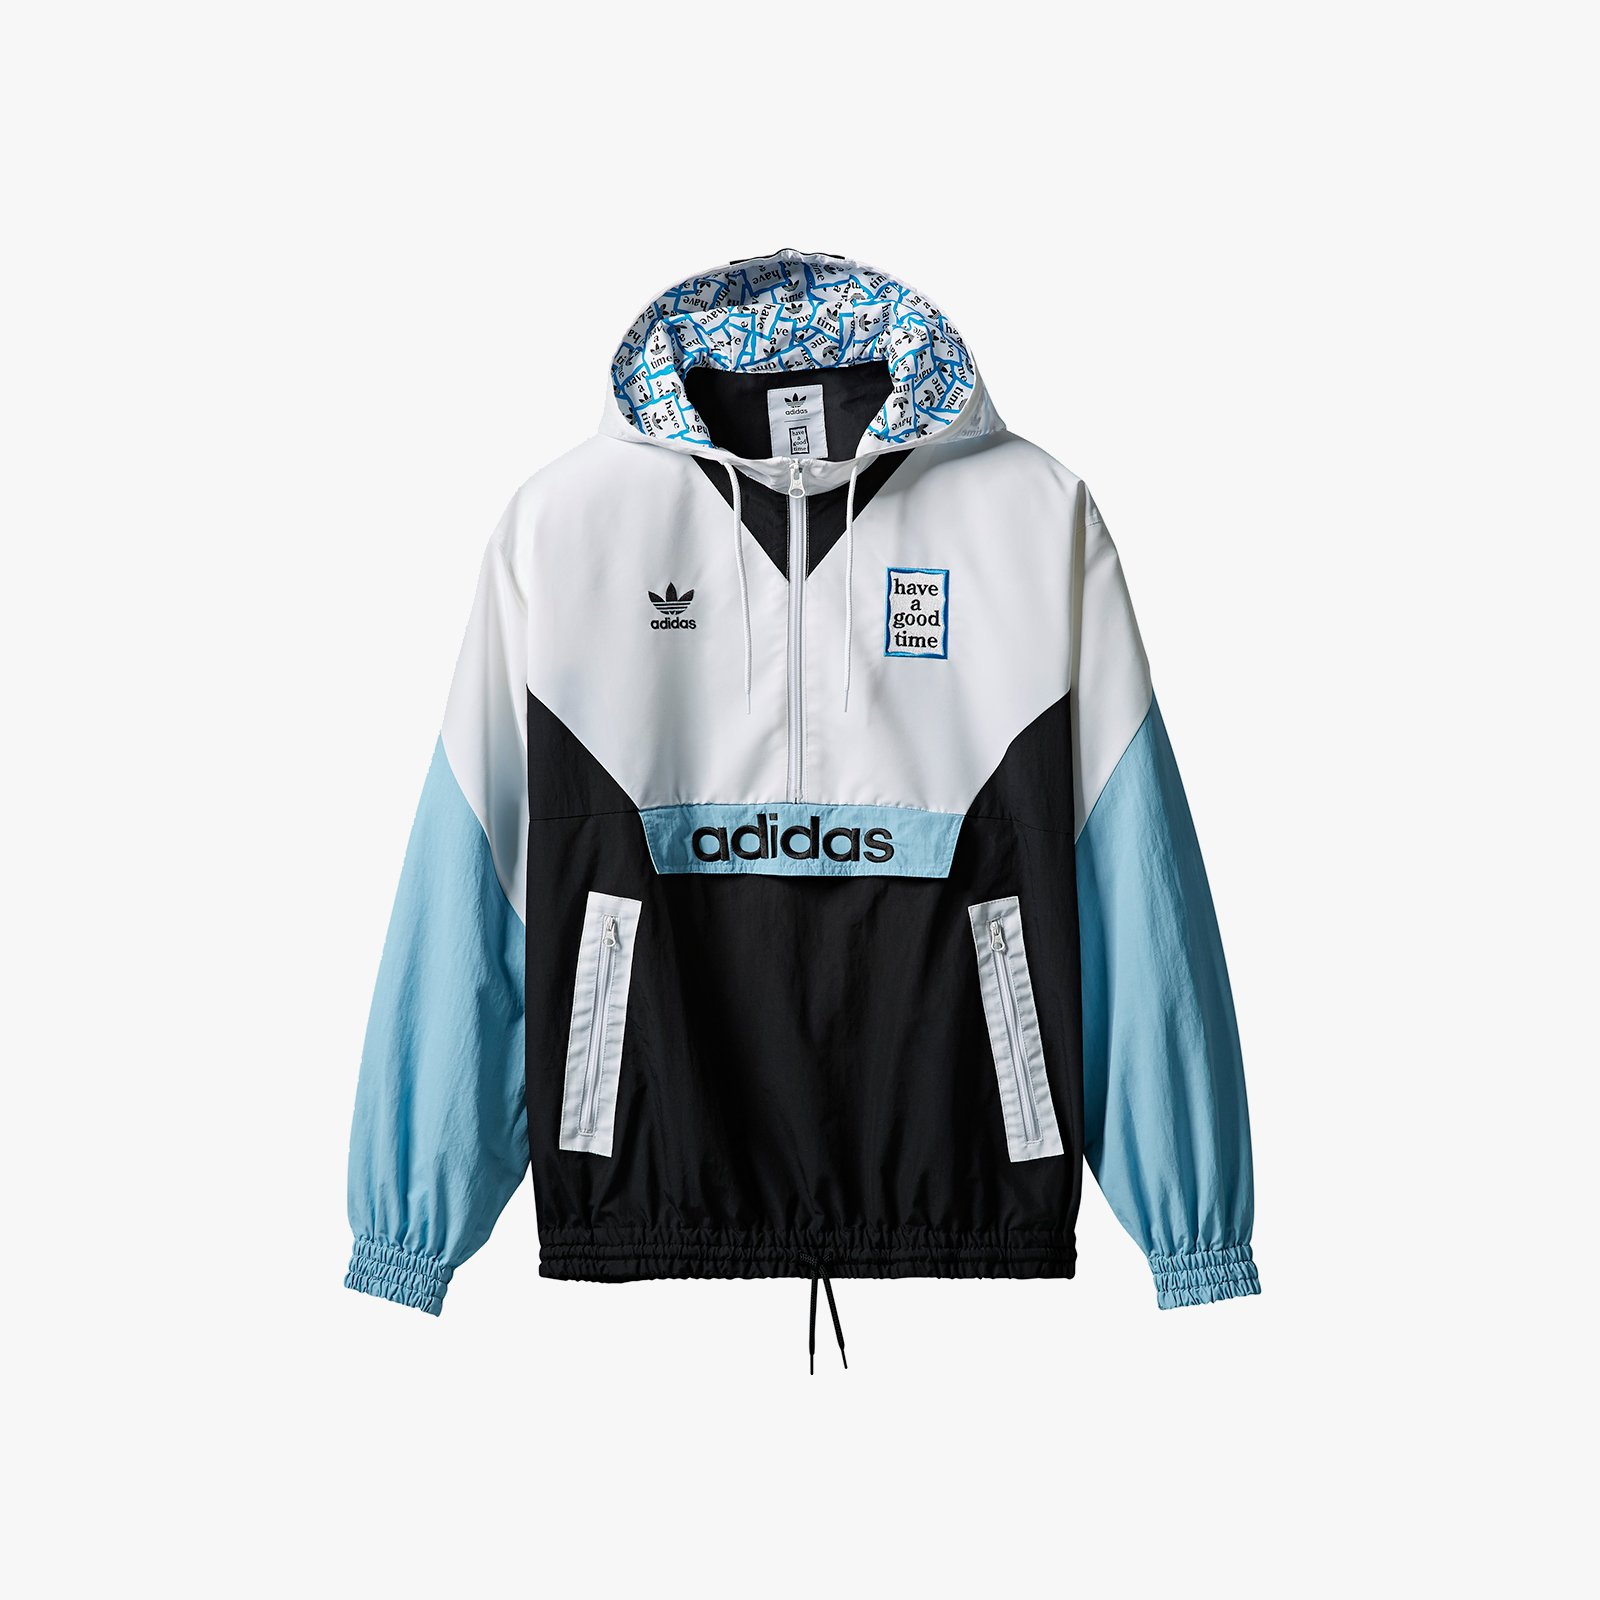 adidas Pullover Windbreaker x Have A Good Time Dz9235